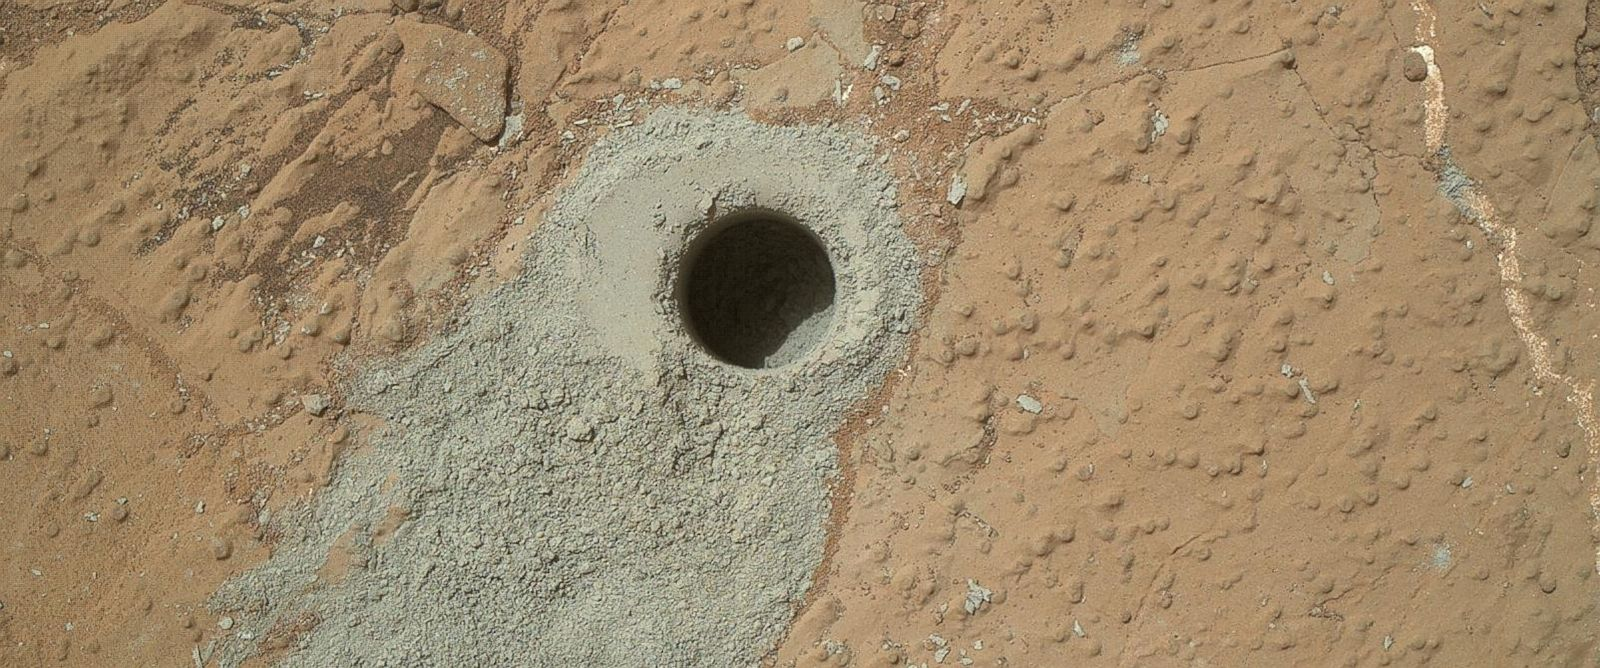 Mars Curiosity Rover Findings Fuel Theories of Ancient ...